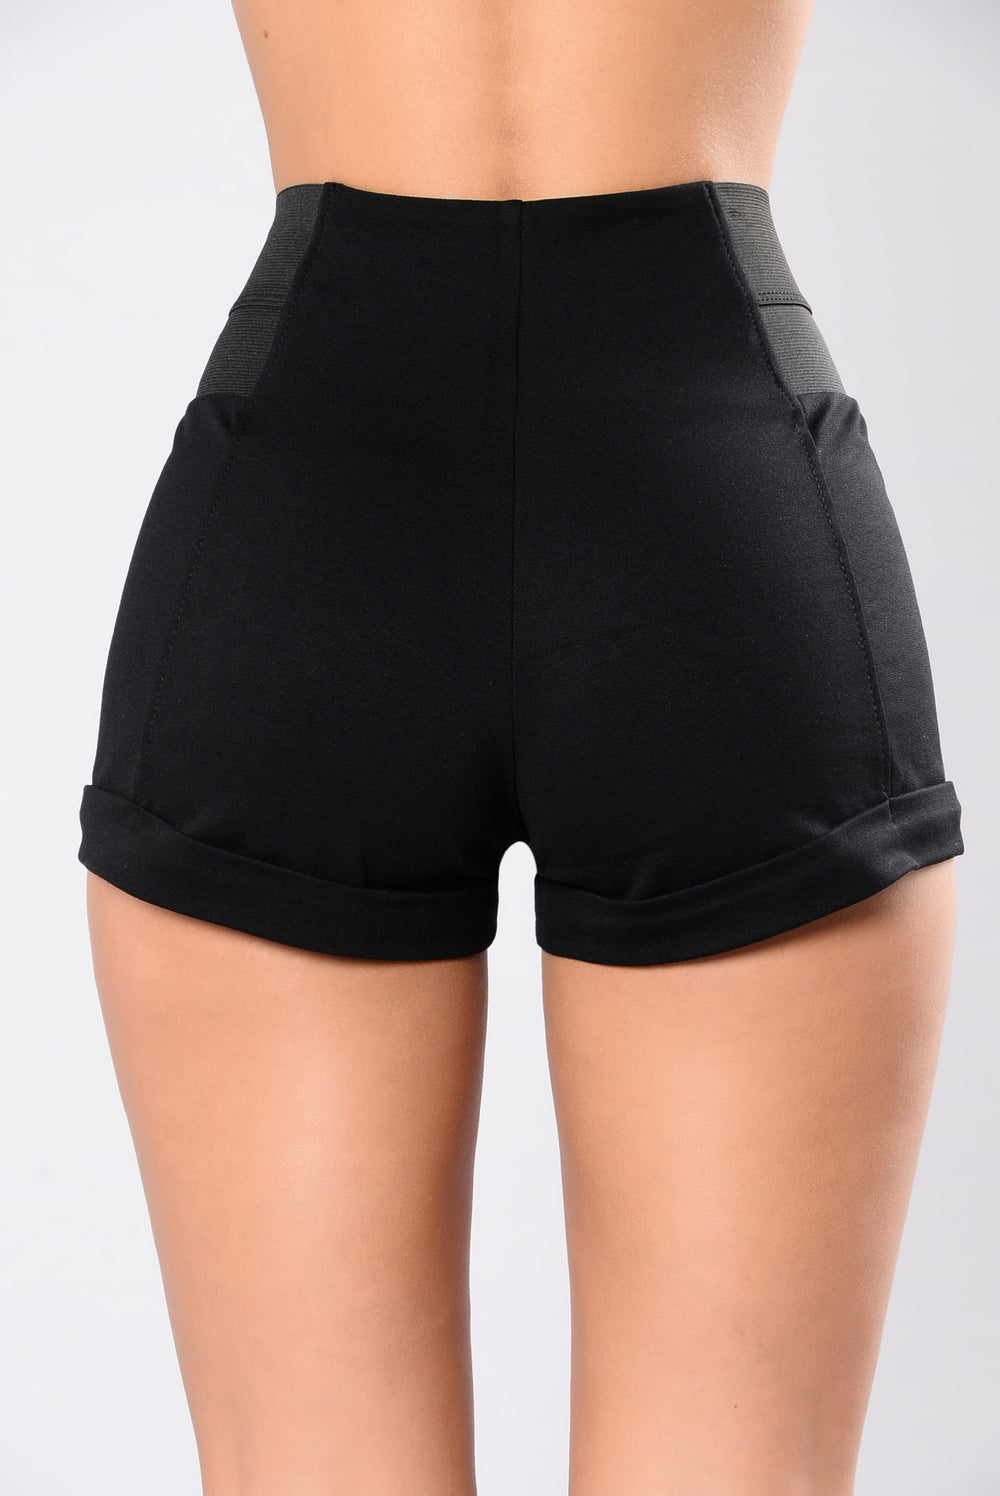 Let's Play Shorts - Black